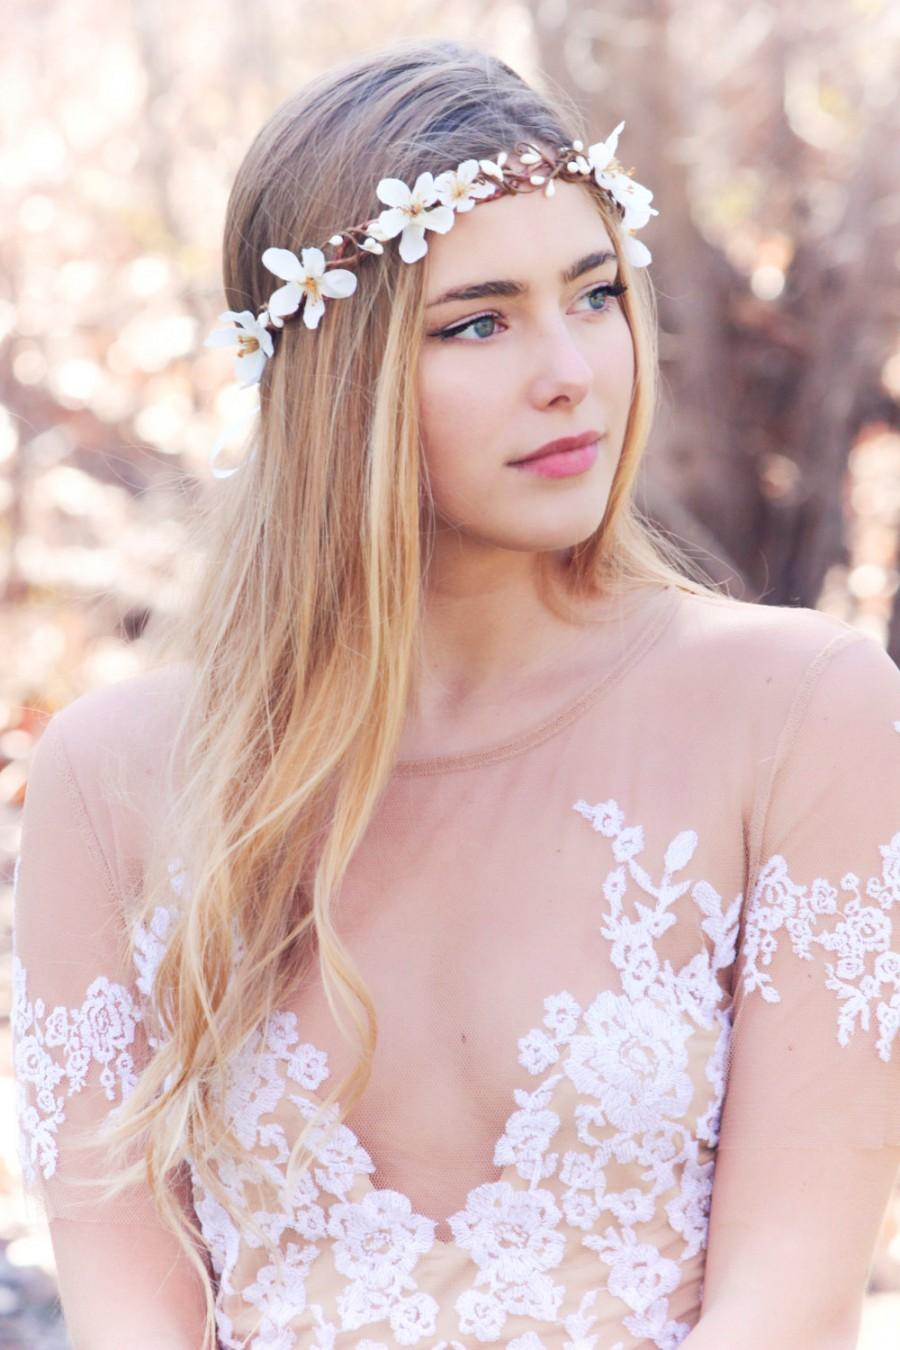 White Apple Blossom Boho Wedding Wreath Bridal Flower Crown Bridal